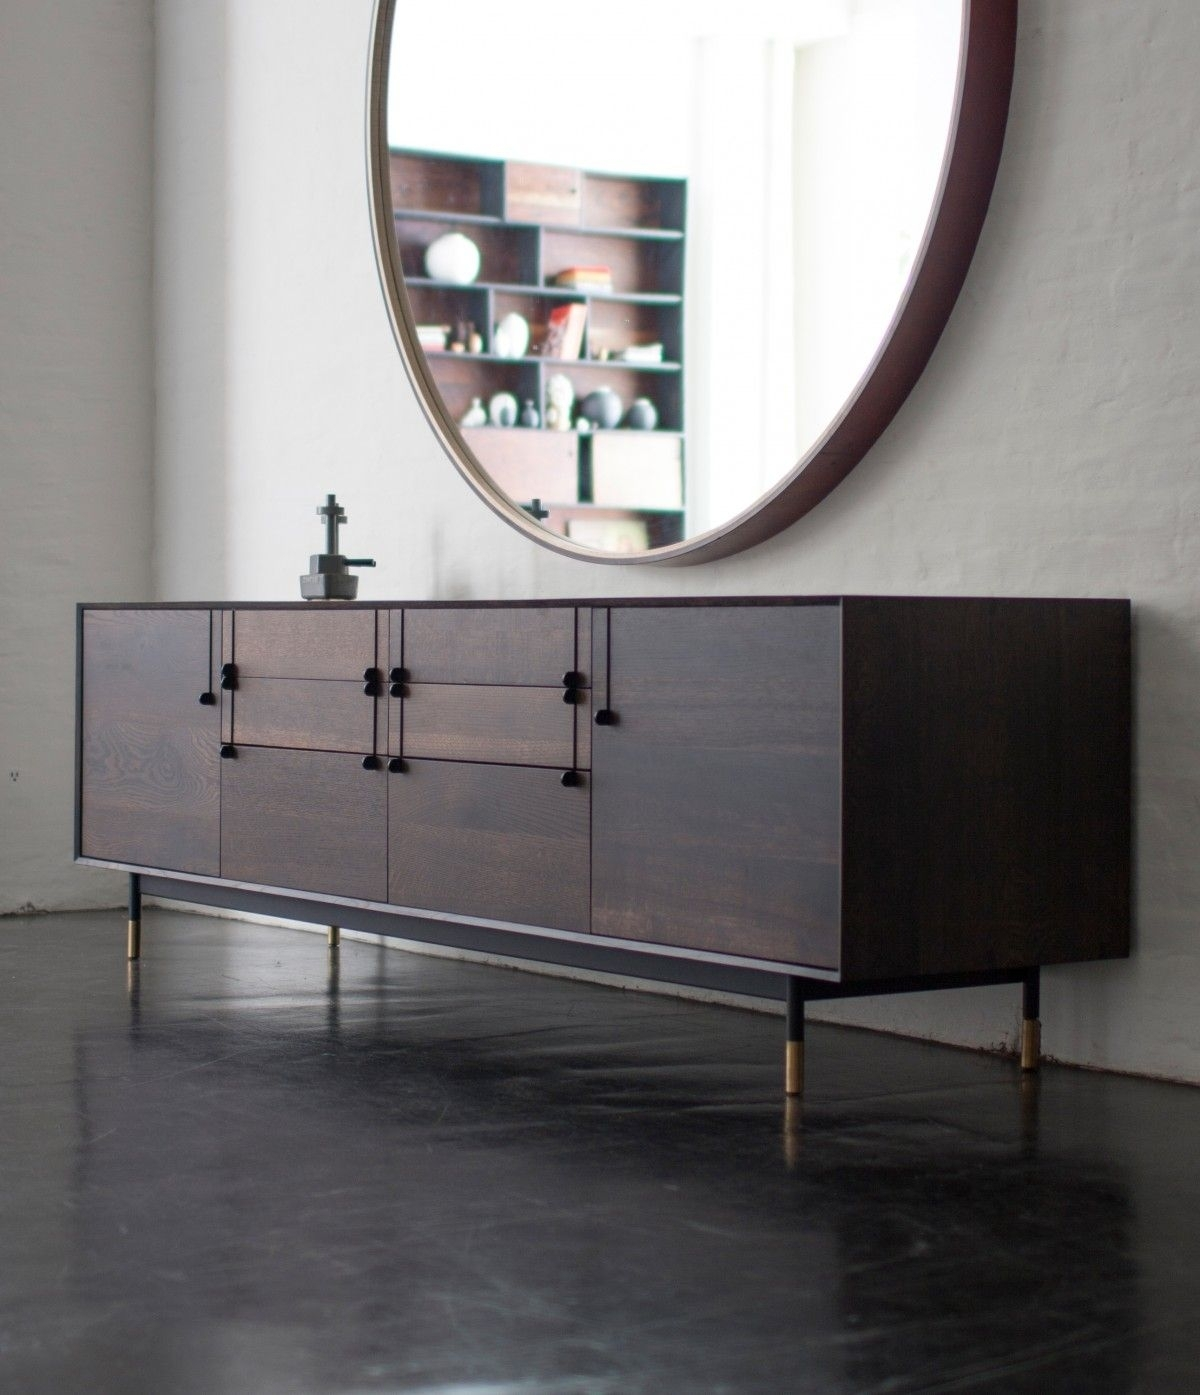 Furniture | Lake Credenza | Bddw | Sideboard | Pinterest | Furniture Within Most Recent Capiz Refinement Sideboards (View 19 of 20)